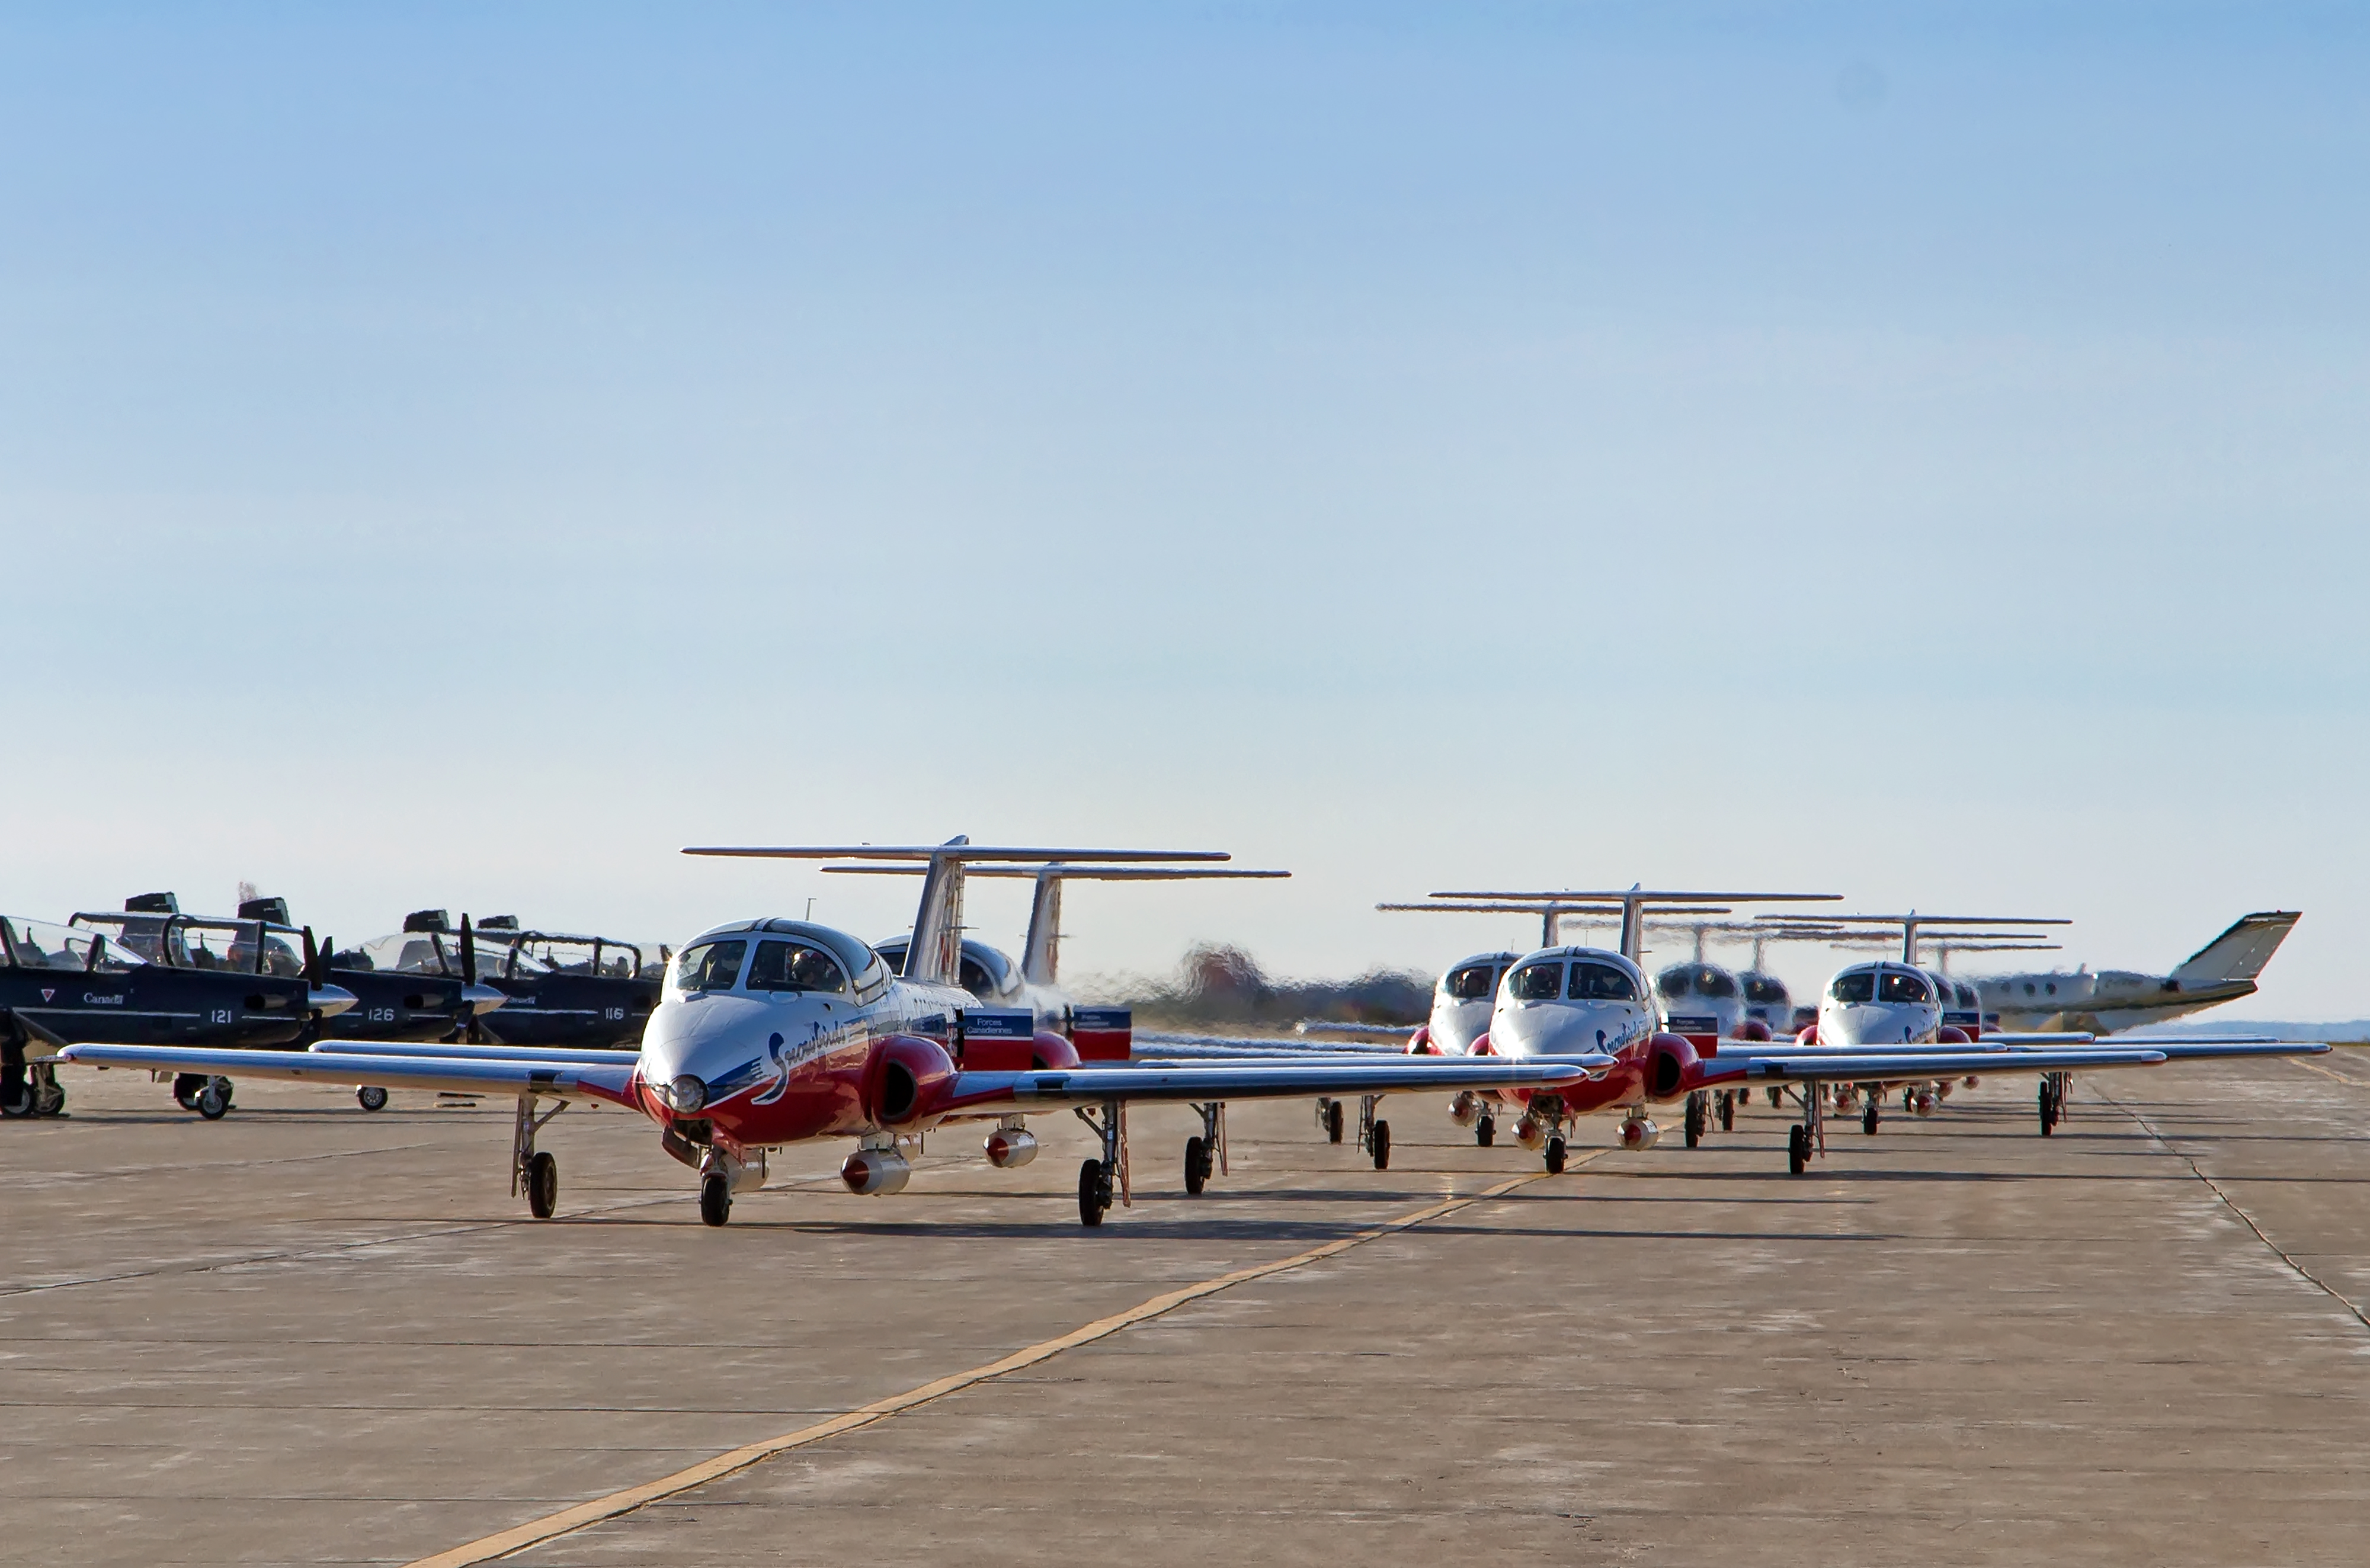 During the Tutor 50th anniversary celebration at 15 Wing Moose Jaw, Saskatchewan, the Snowbirds [431 (Air Demonstration) Squadron] taxi in after their year-end aerial display. PHOTO: Mike Leudey